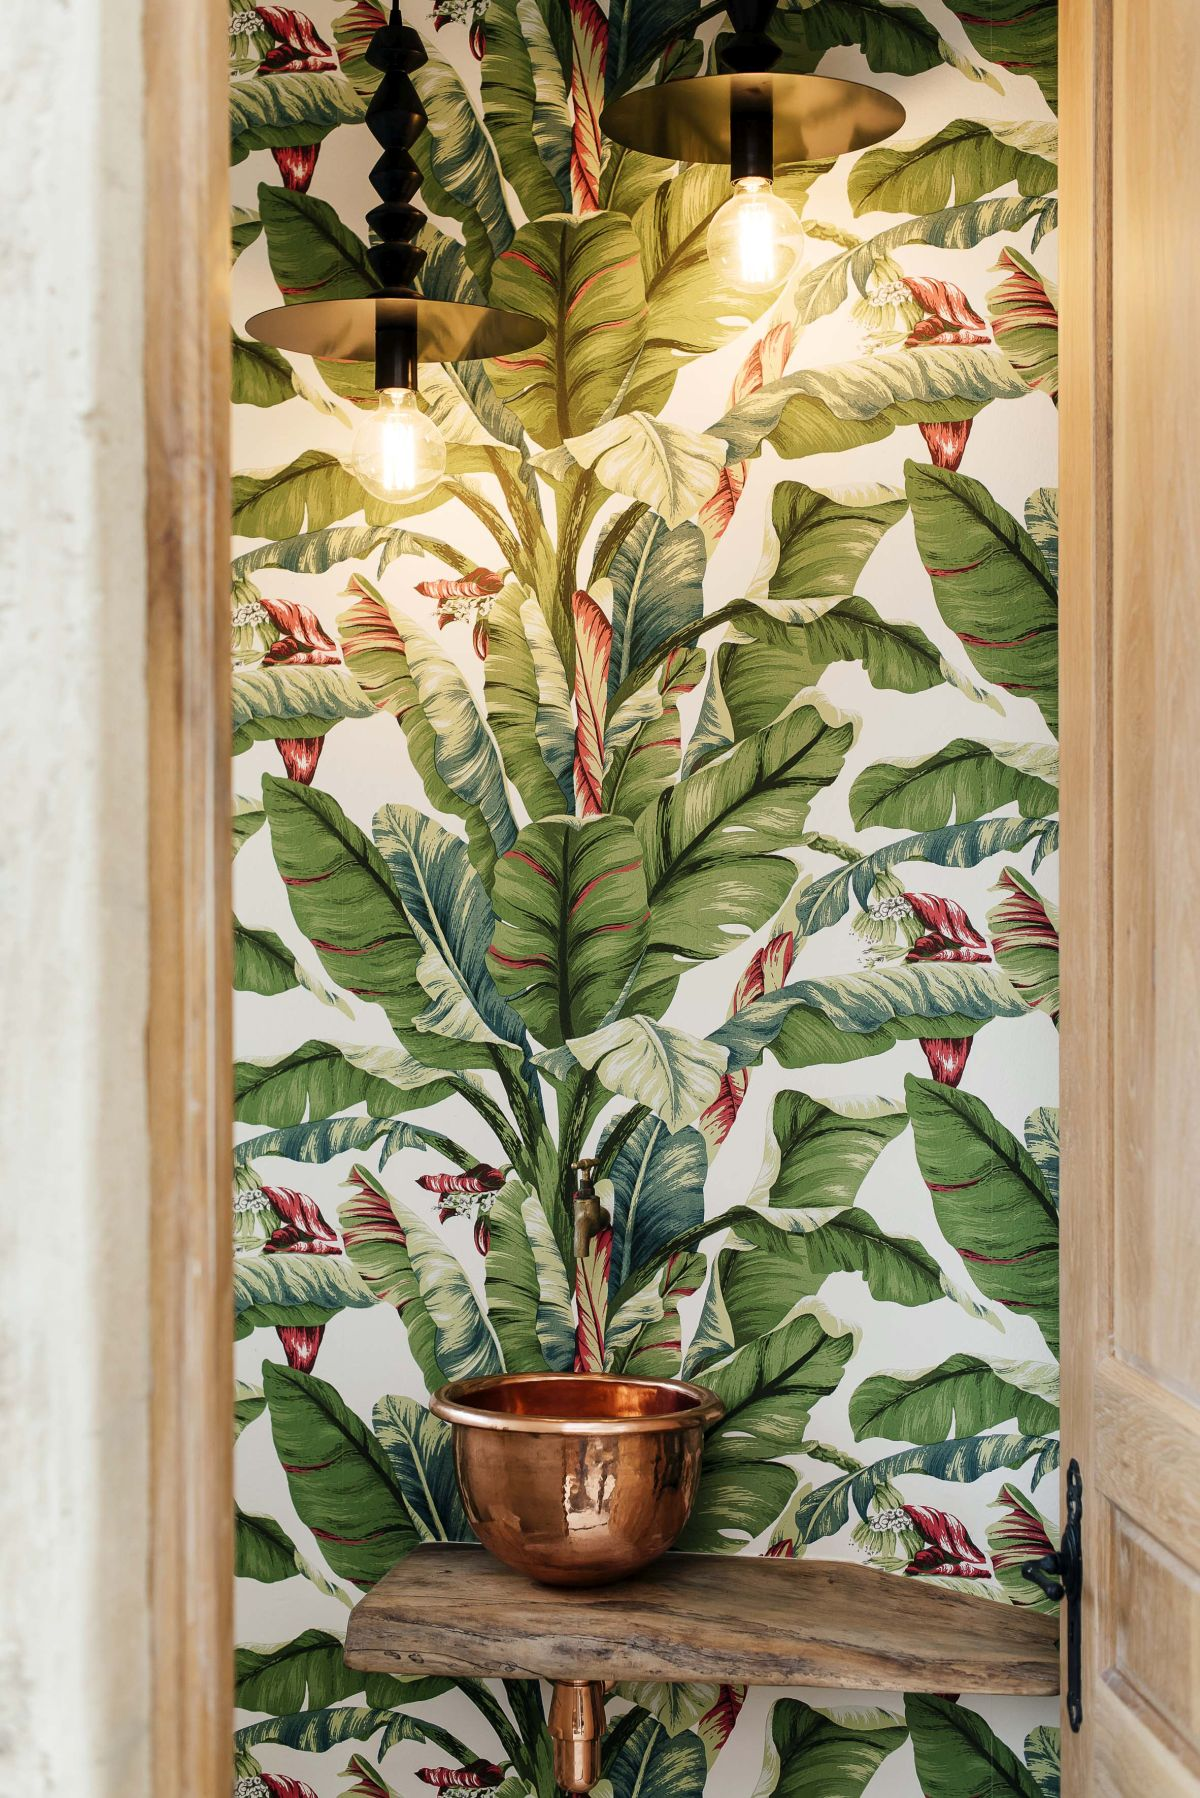 A variety of indoor plants complemented by themed artwork give the house a fresh, nature-infused vibe